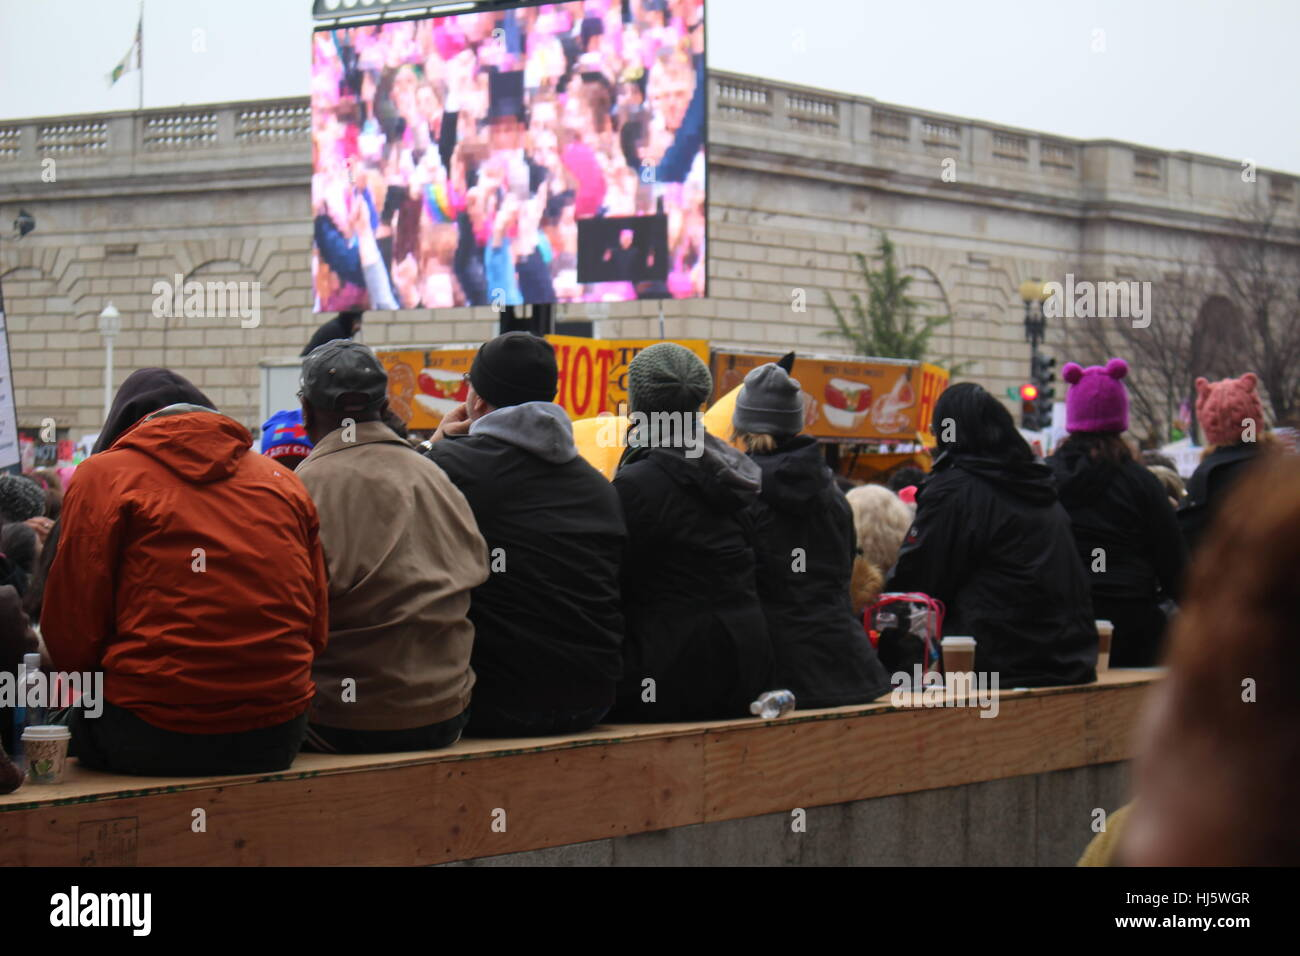 District of Columbia, USA. 21 Jan, 2017. Eight protesters sit along a wall watching a livestream of speakers at - Stock Image